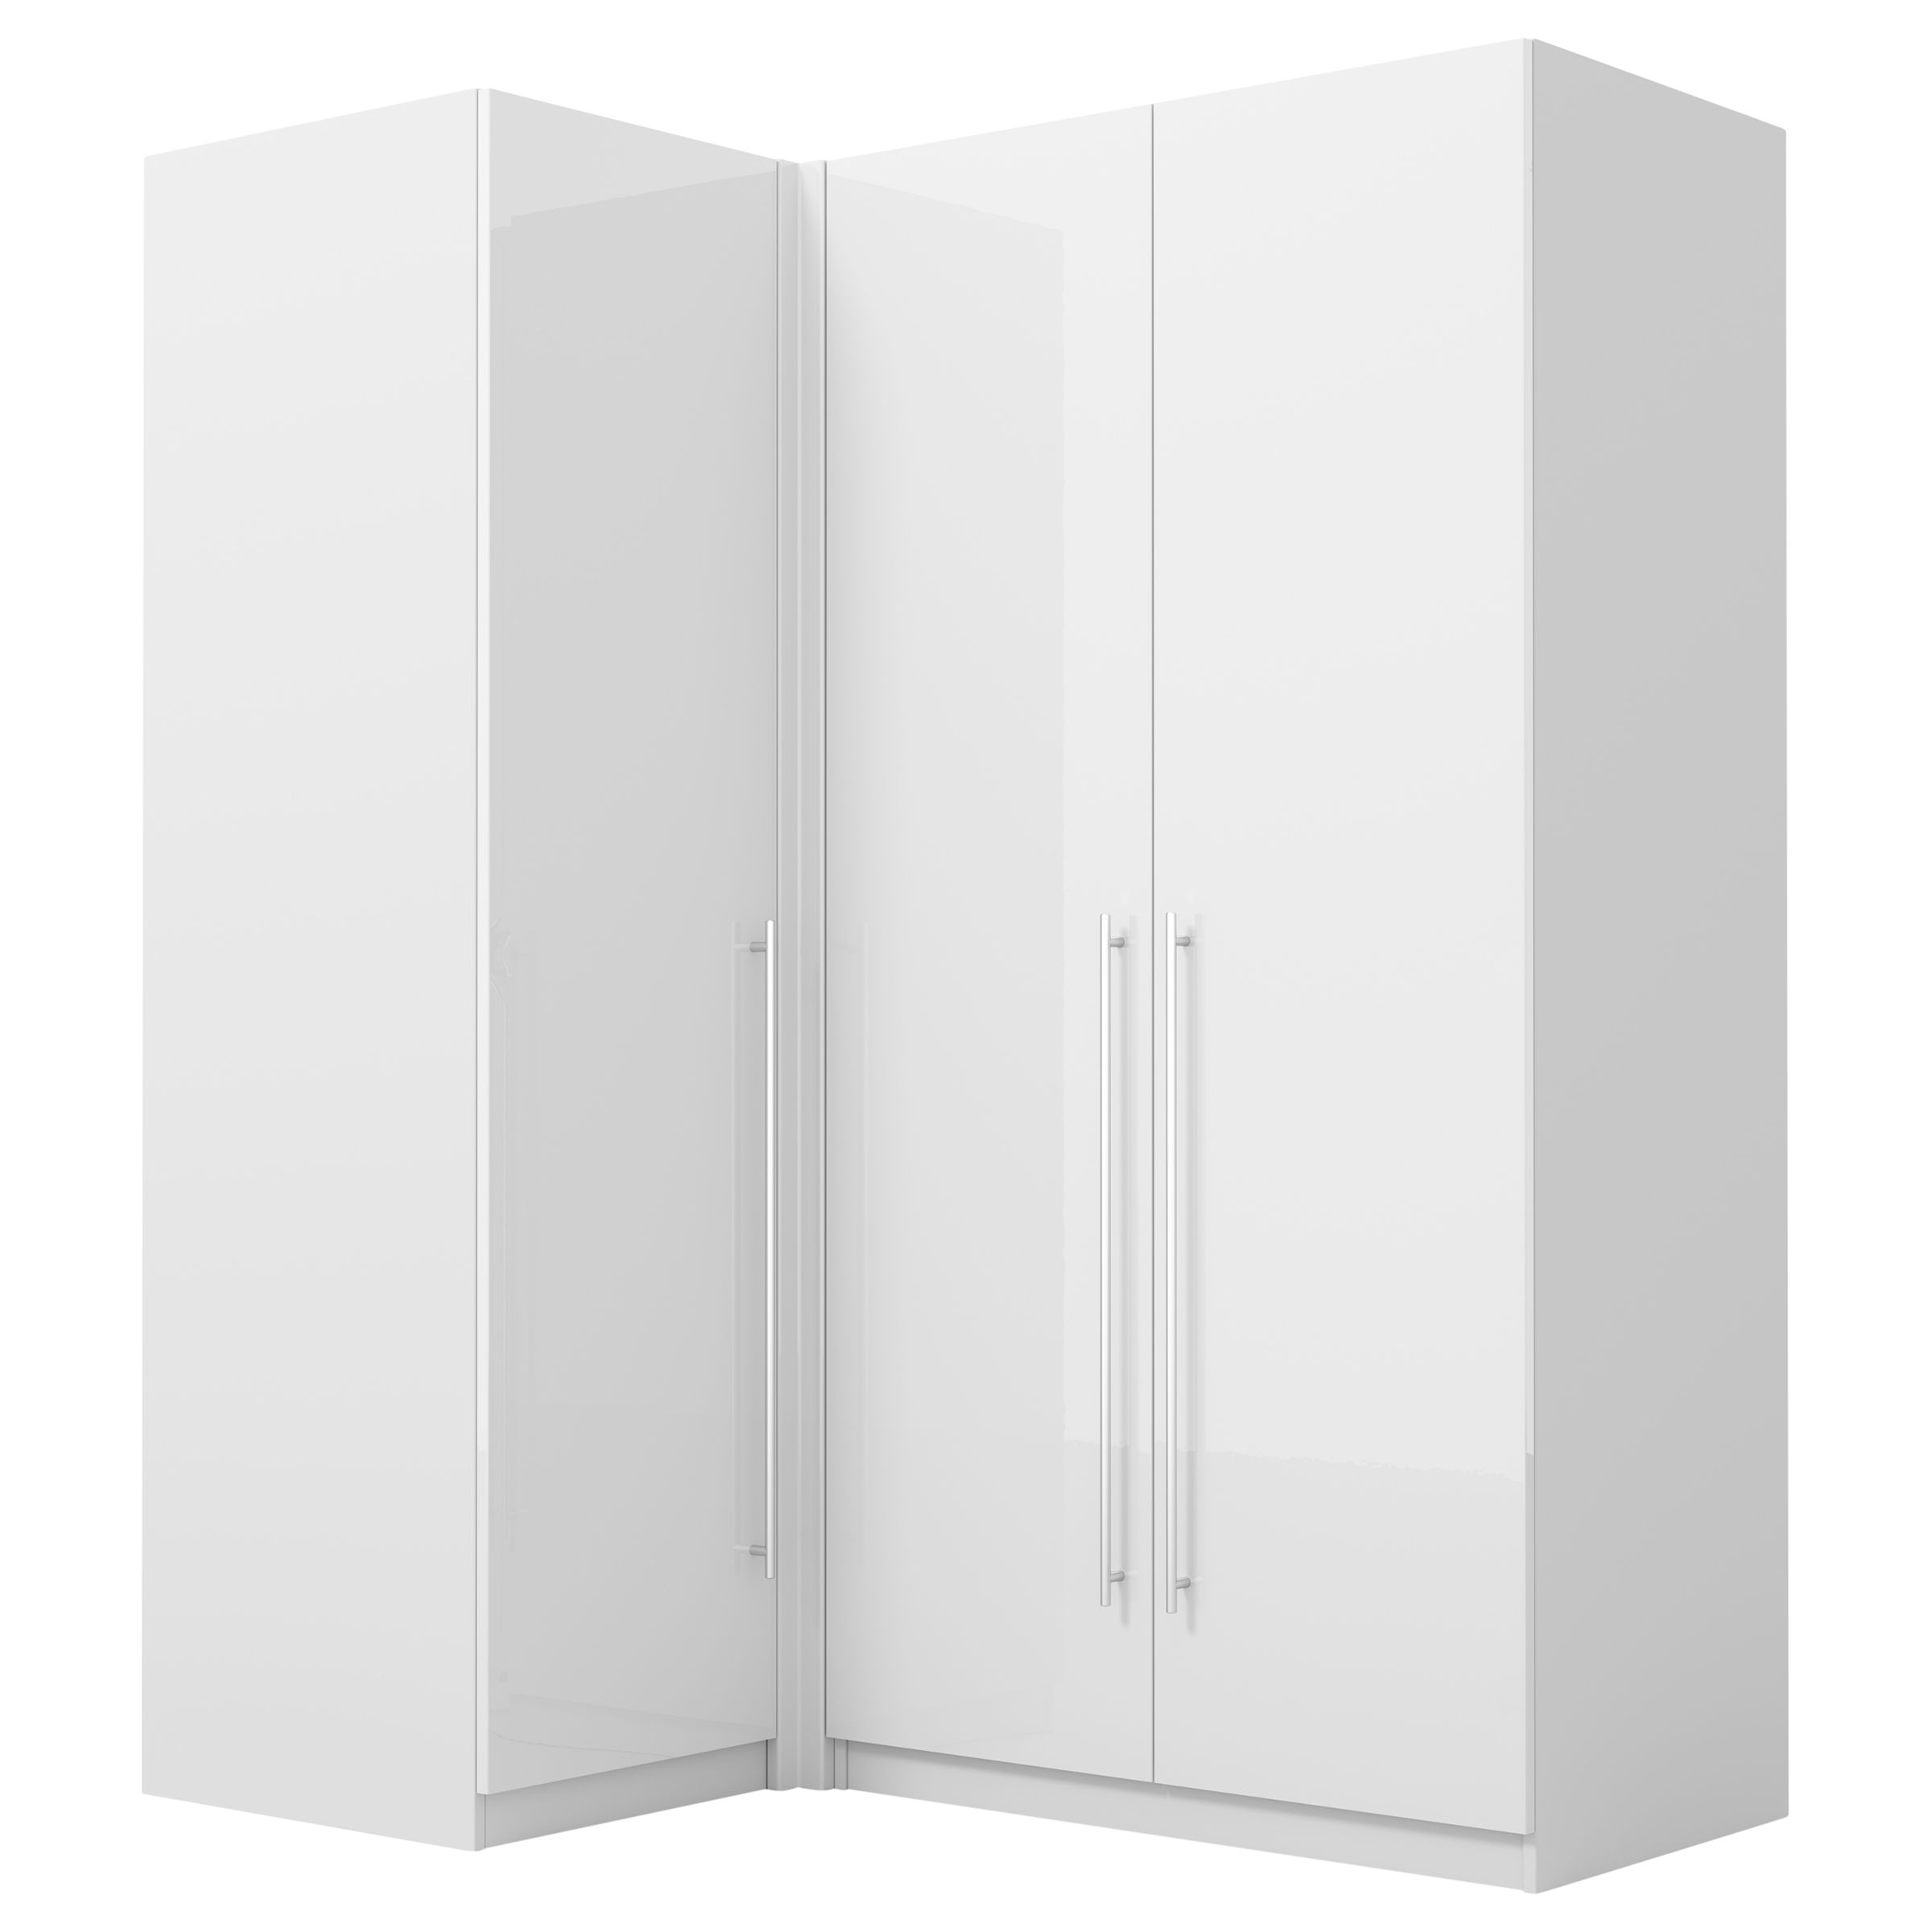 Corner Wardrobe House By John Lewis Mix It Long T Bar Handle Corner Wardrobe Gloss White Matt White